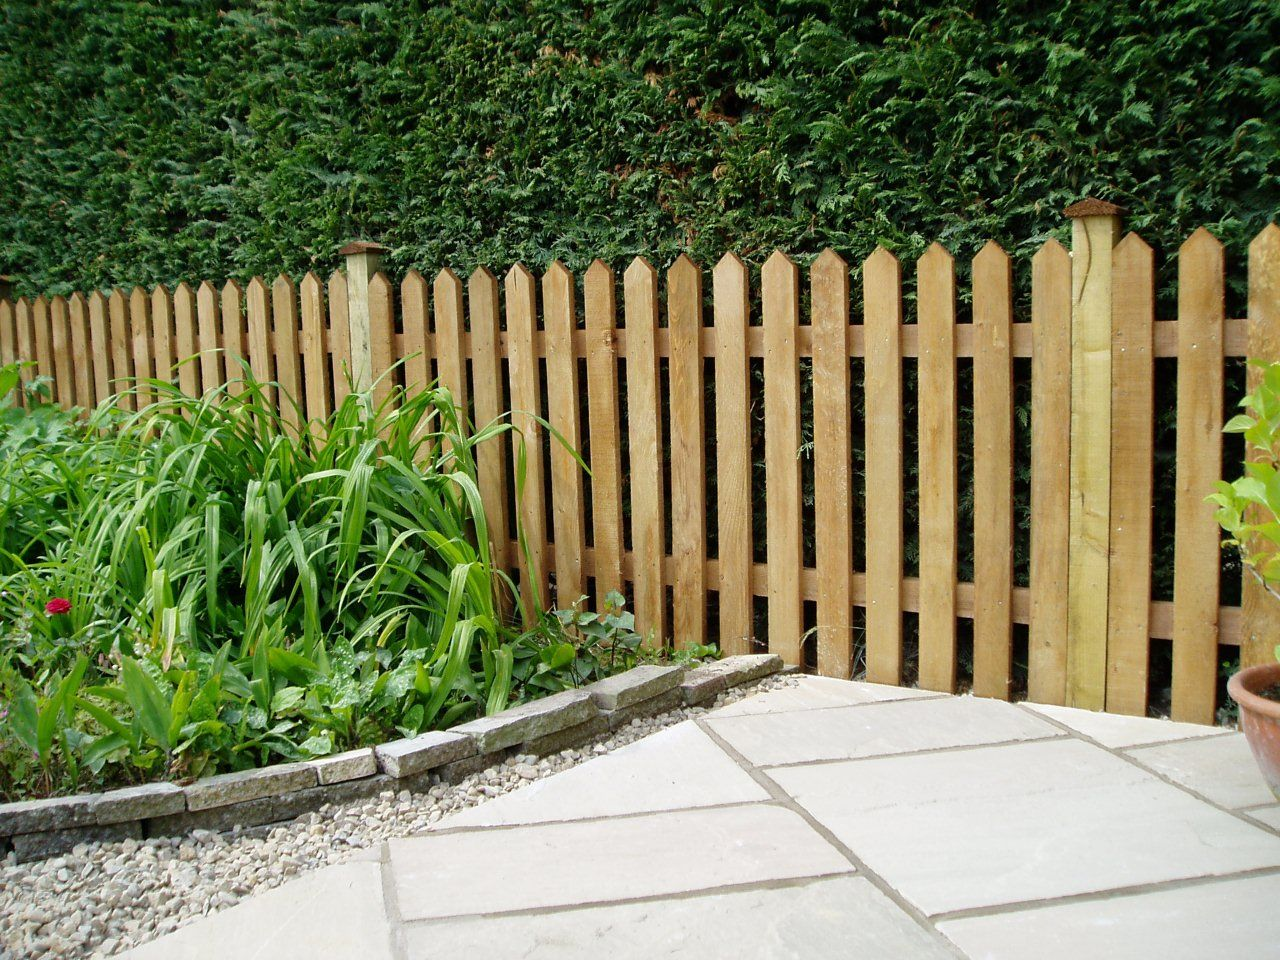 10+ Garden Fence Ideas That Truly Creative, Inspiring, and Low-cost ...